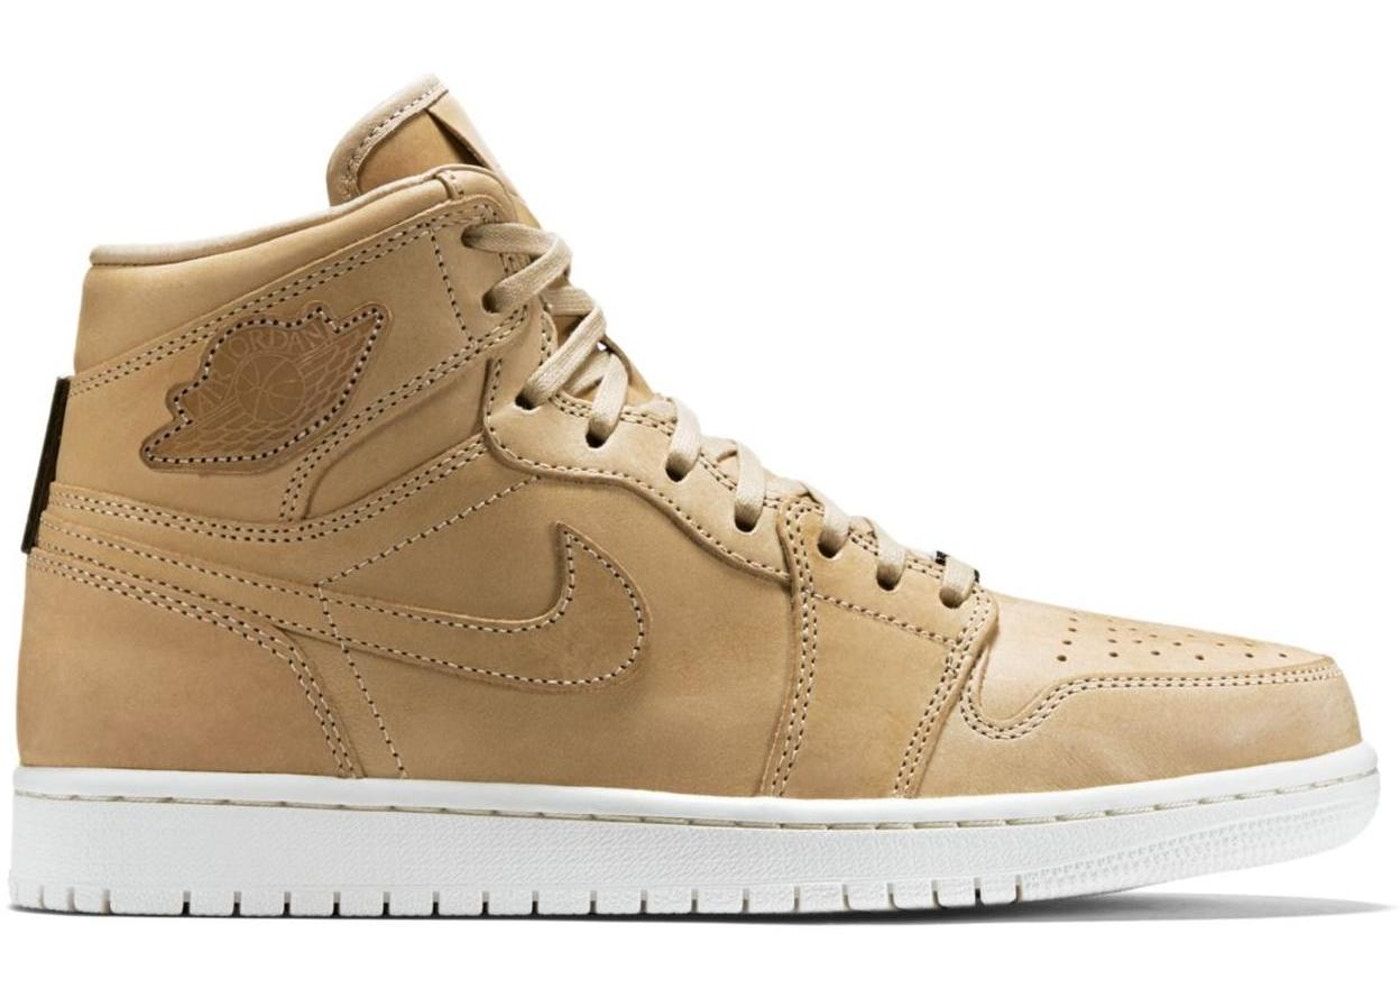 huge selection of 16ae5 6c116 Jordan 1 Retro Pinnacle Vachetta Tan - 705075-201